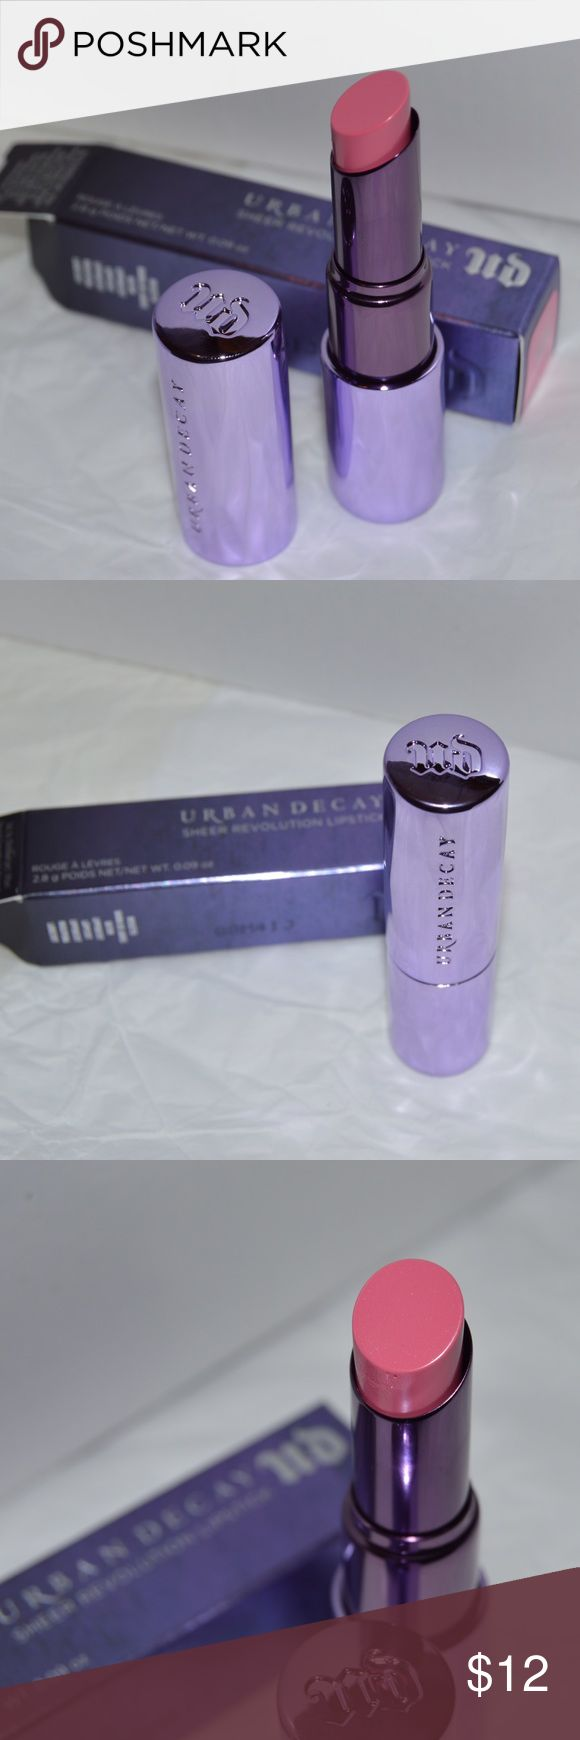 Urban Decay Sheer Revolution Lipstick Brand new - shade sheer obsessed Urban Decay Makeup Lipstick